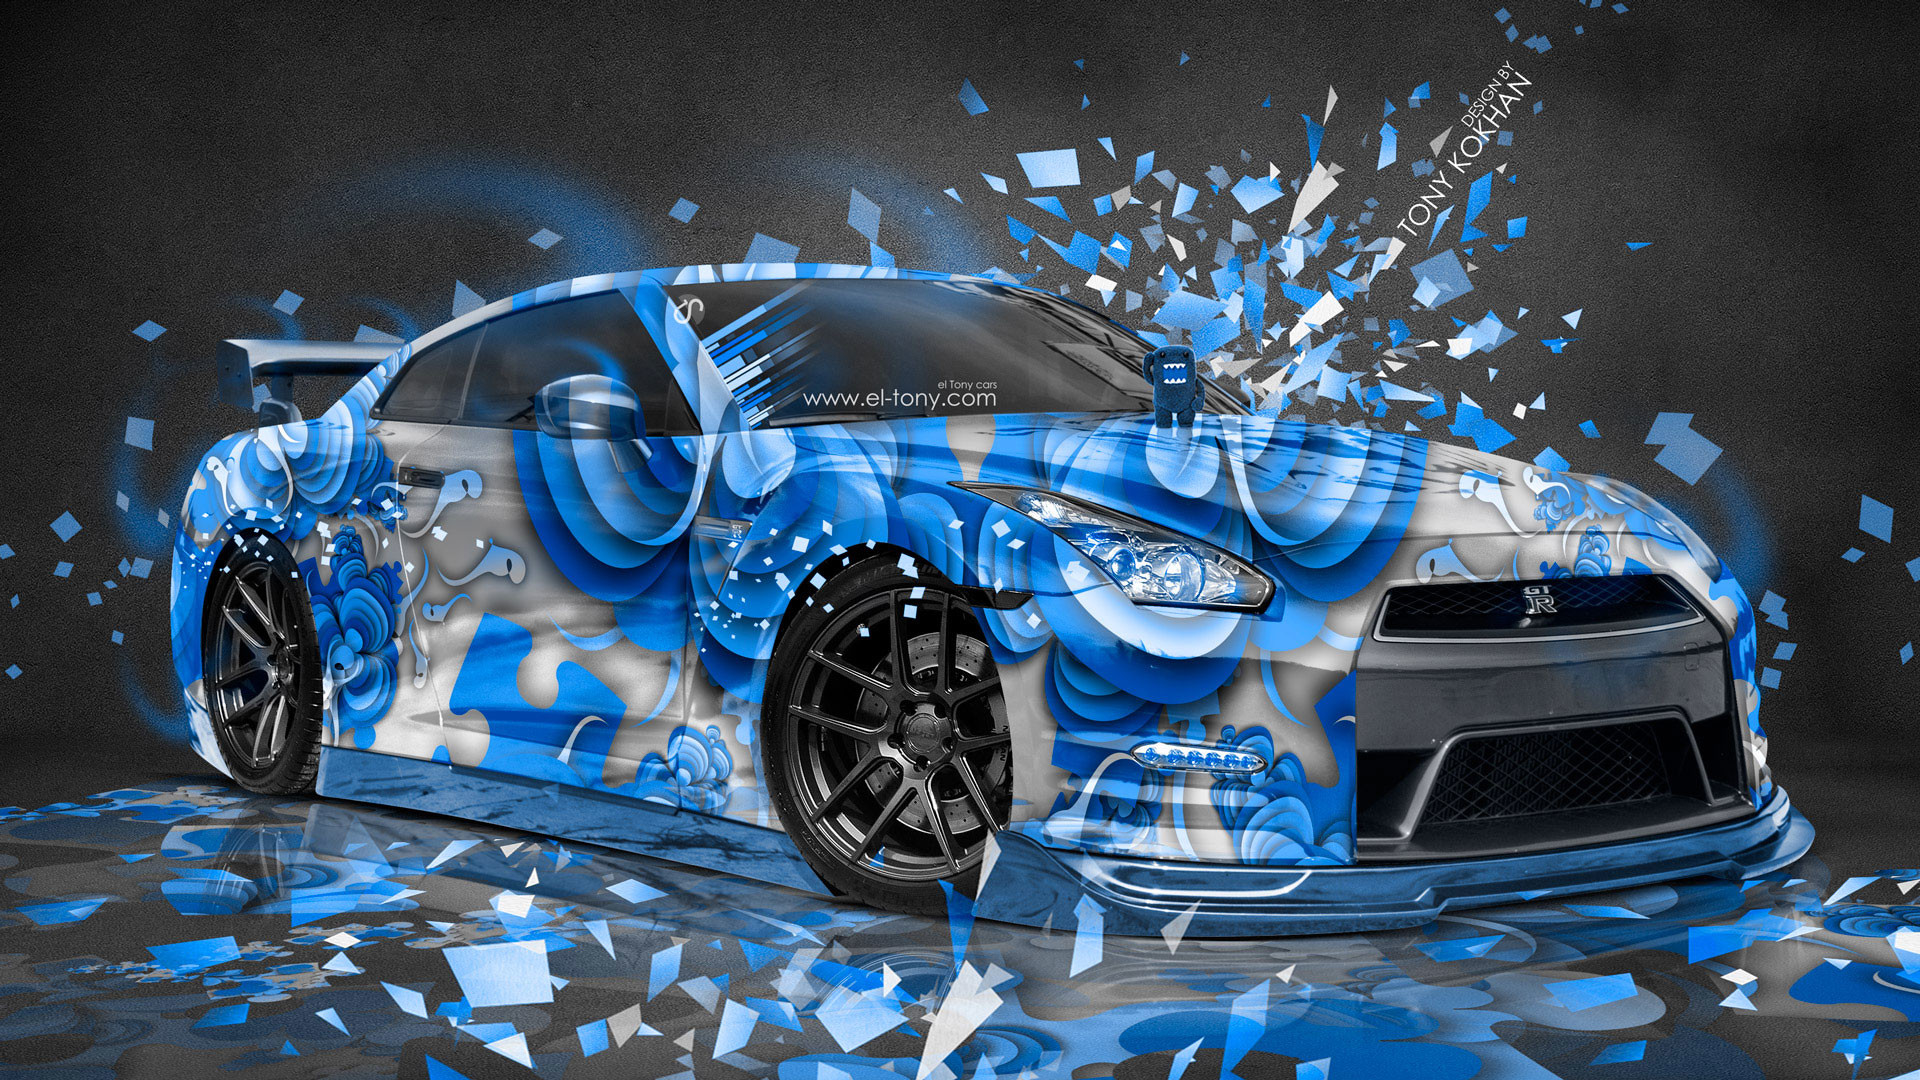 Download Wallpaper Mobil Sport 3d: 3D Background Wallpaper (81+ Pictures